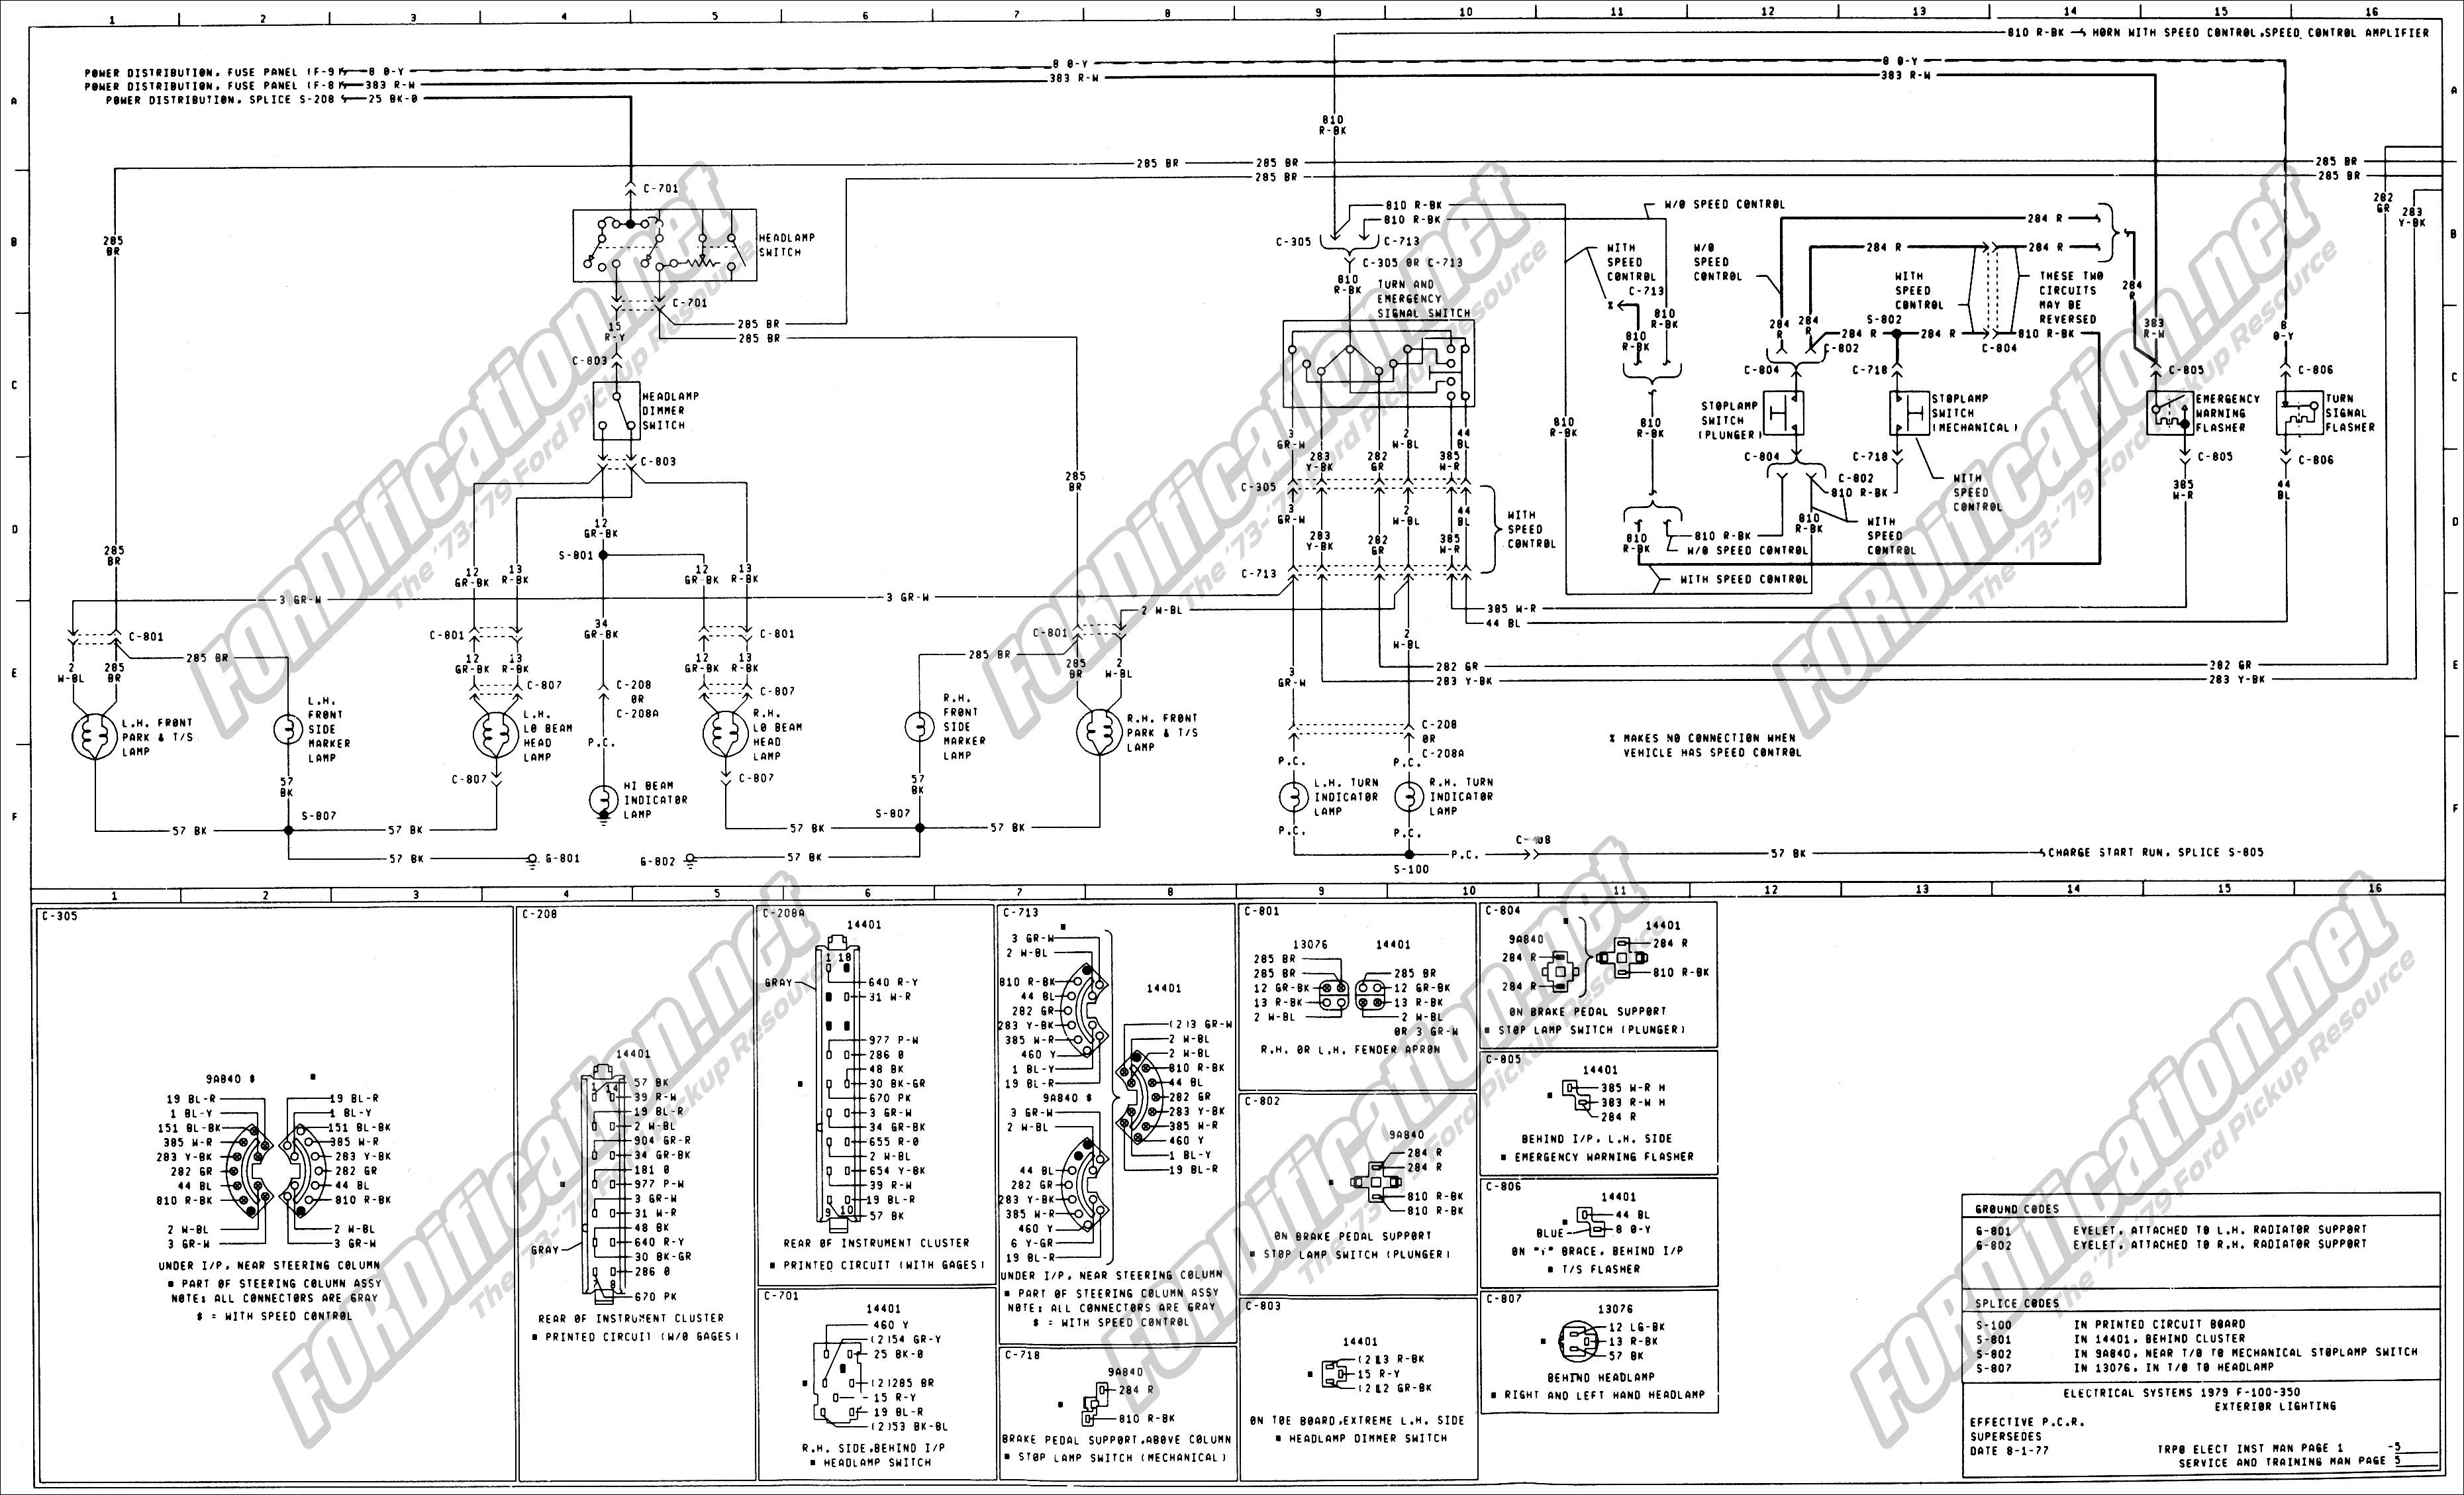 2007 Ford Escape Engine Diagram Mustang Wiring Schematics F350 Trailer And Trailerwiring01b Amazing Box Of